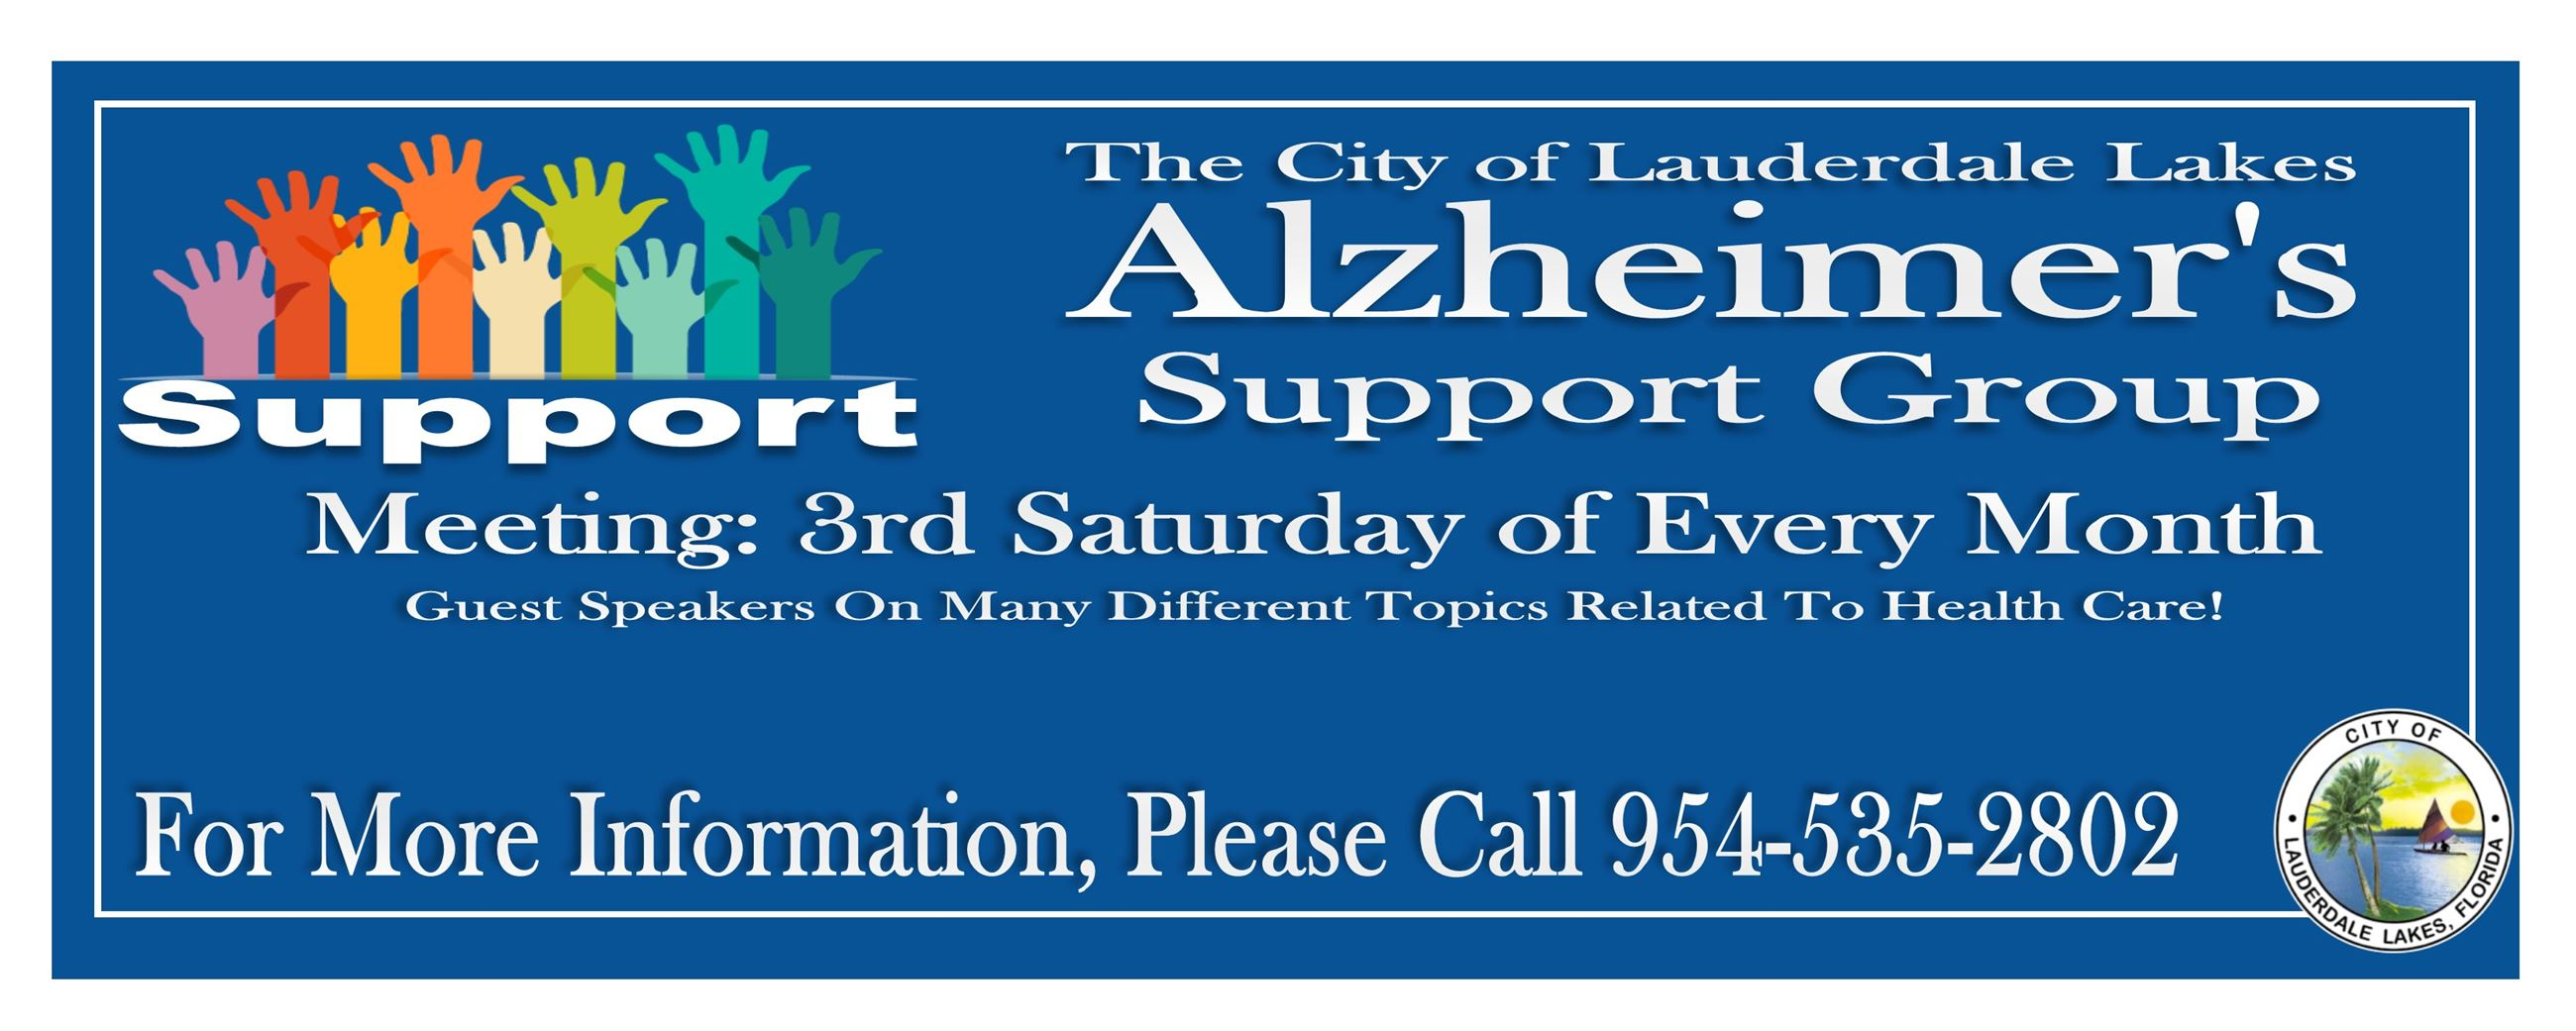 Support Group banner